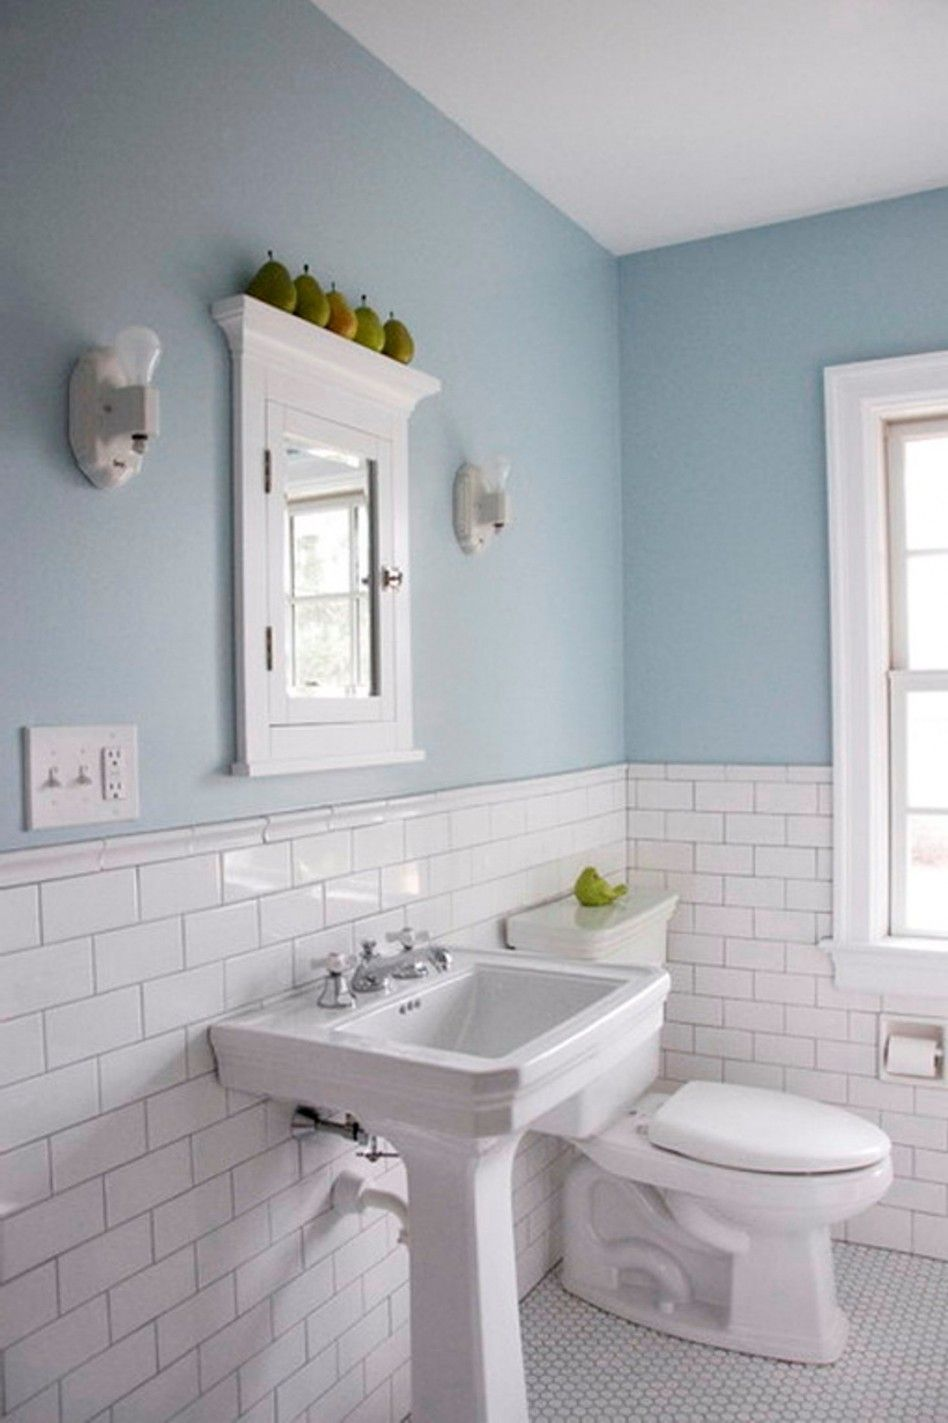 White Subyway Color Combination Traditional Bathroom Floor Tile Also Wahbasin Water Closet And